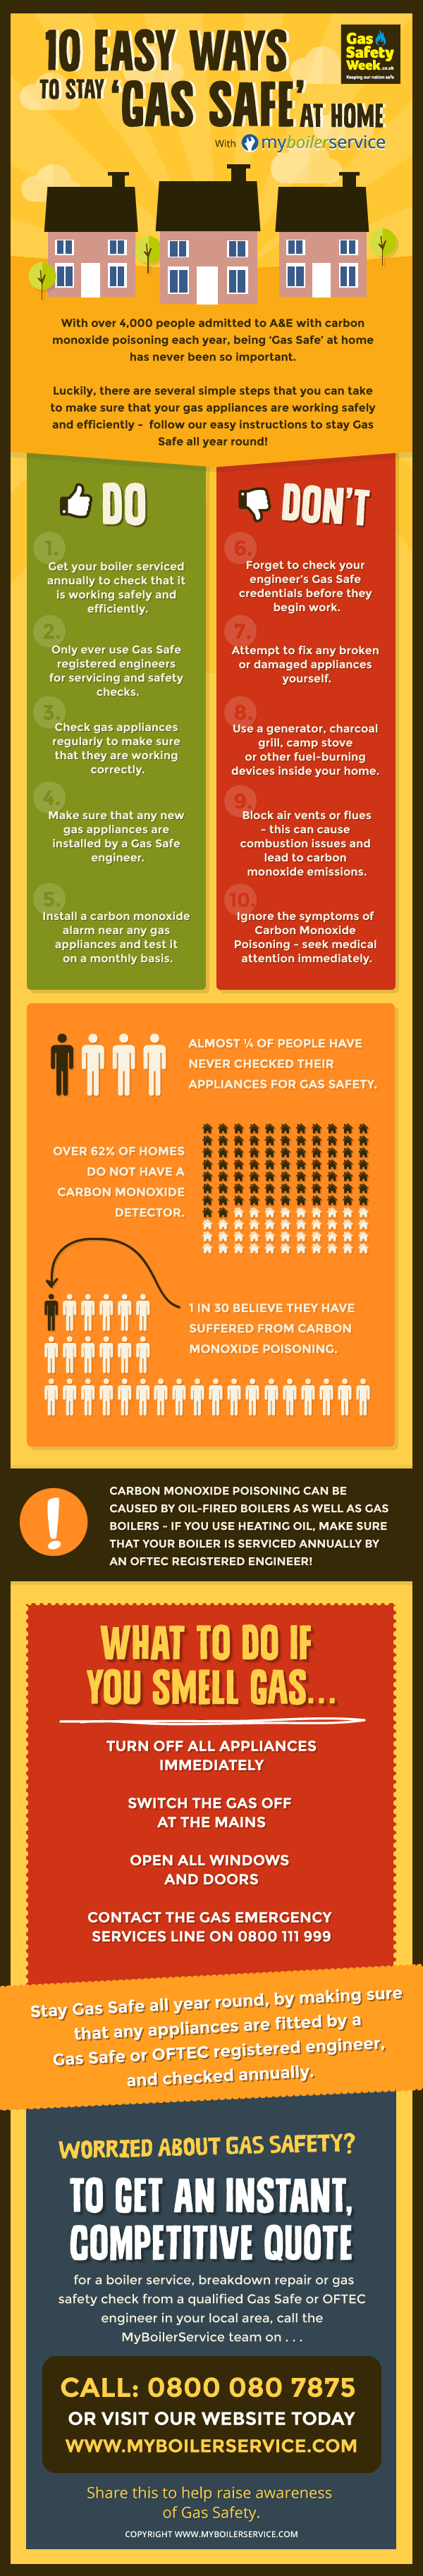 Gas Safety Infographic